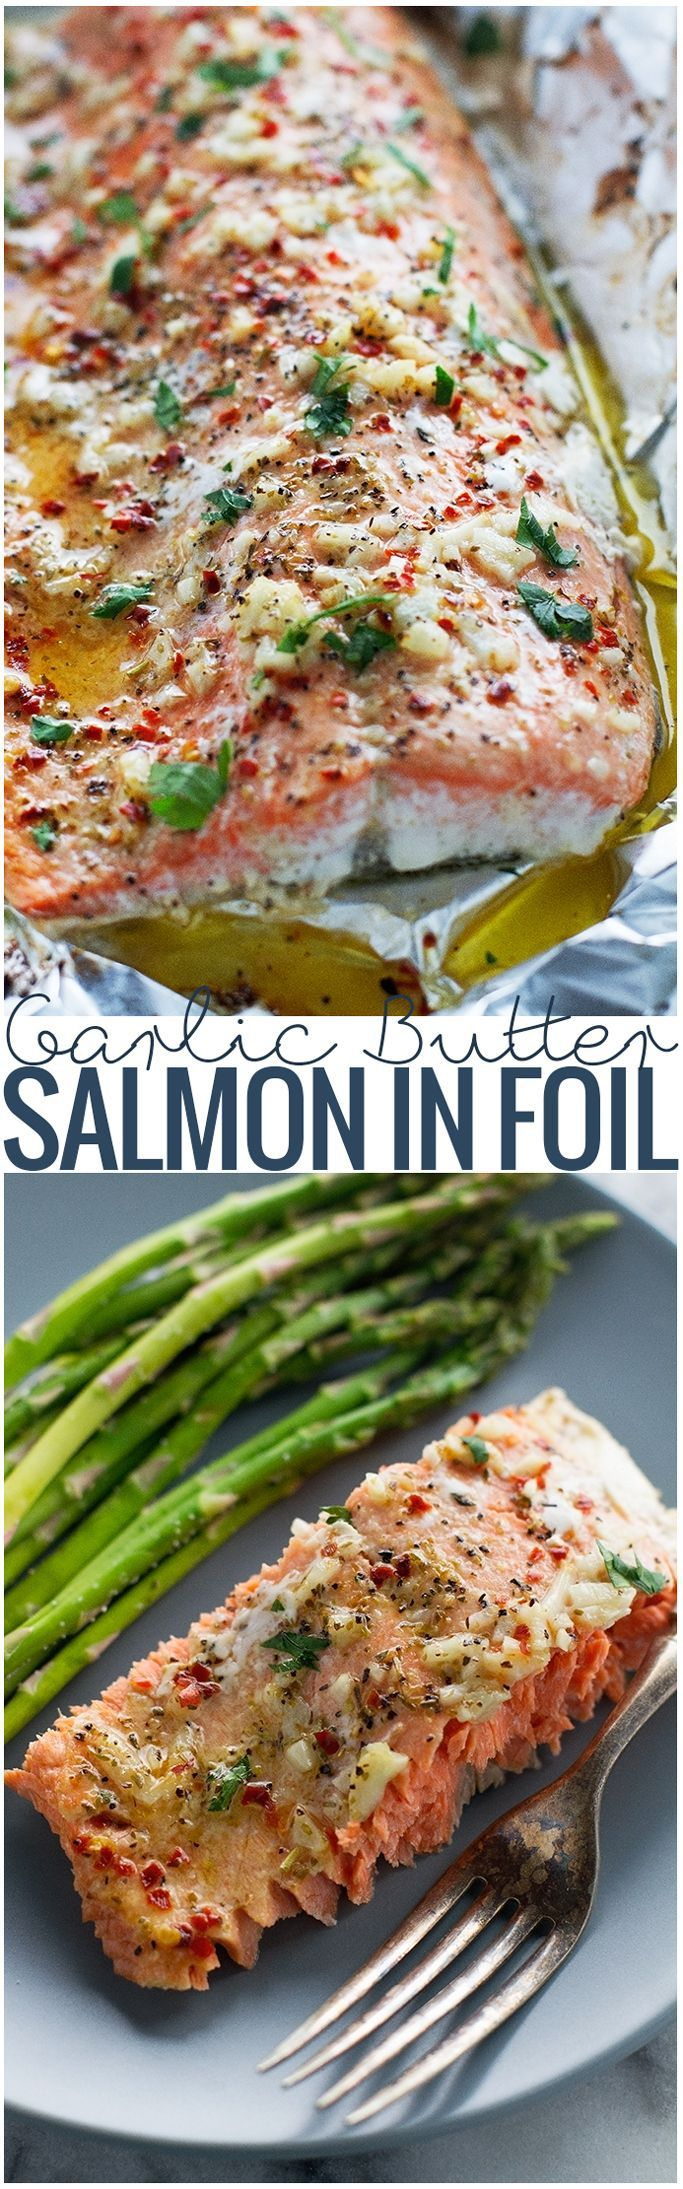 Baked Salmon In Foil That's Been Brushed With My Lemon Garlic Butter Sauce  This Recipe